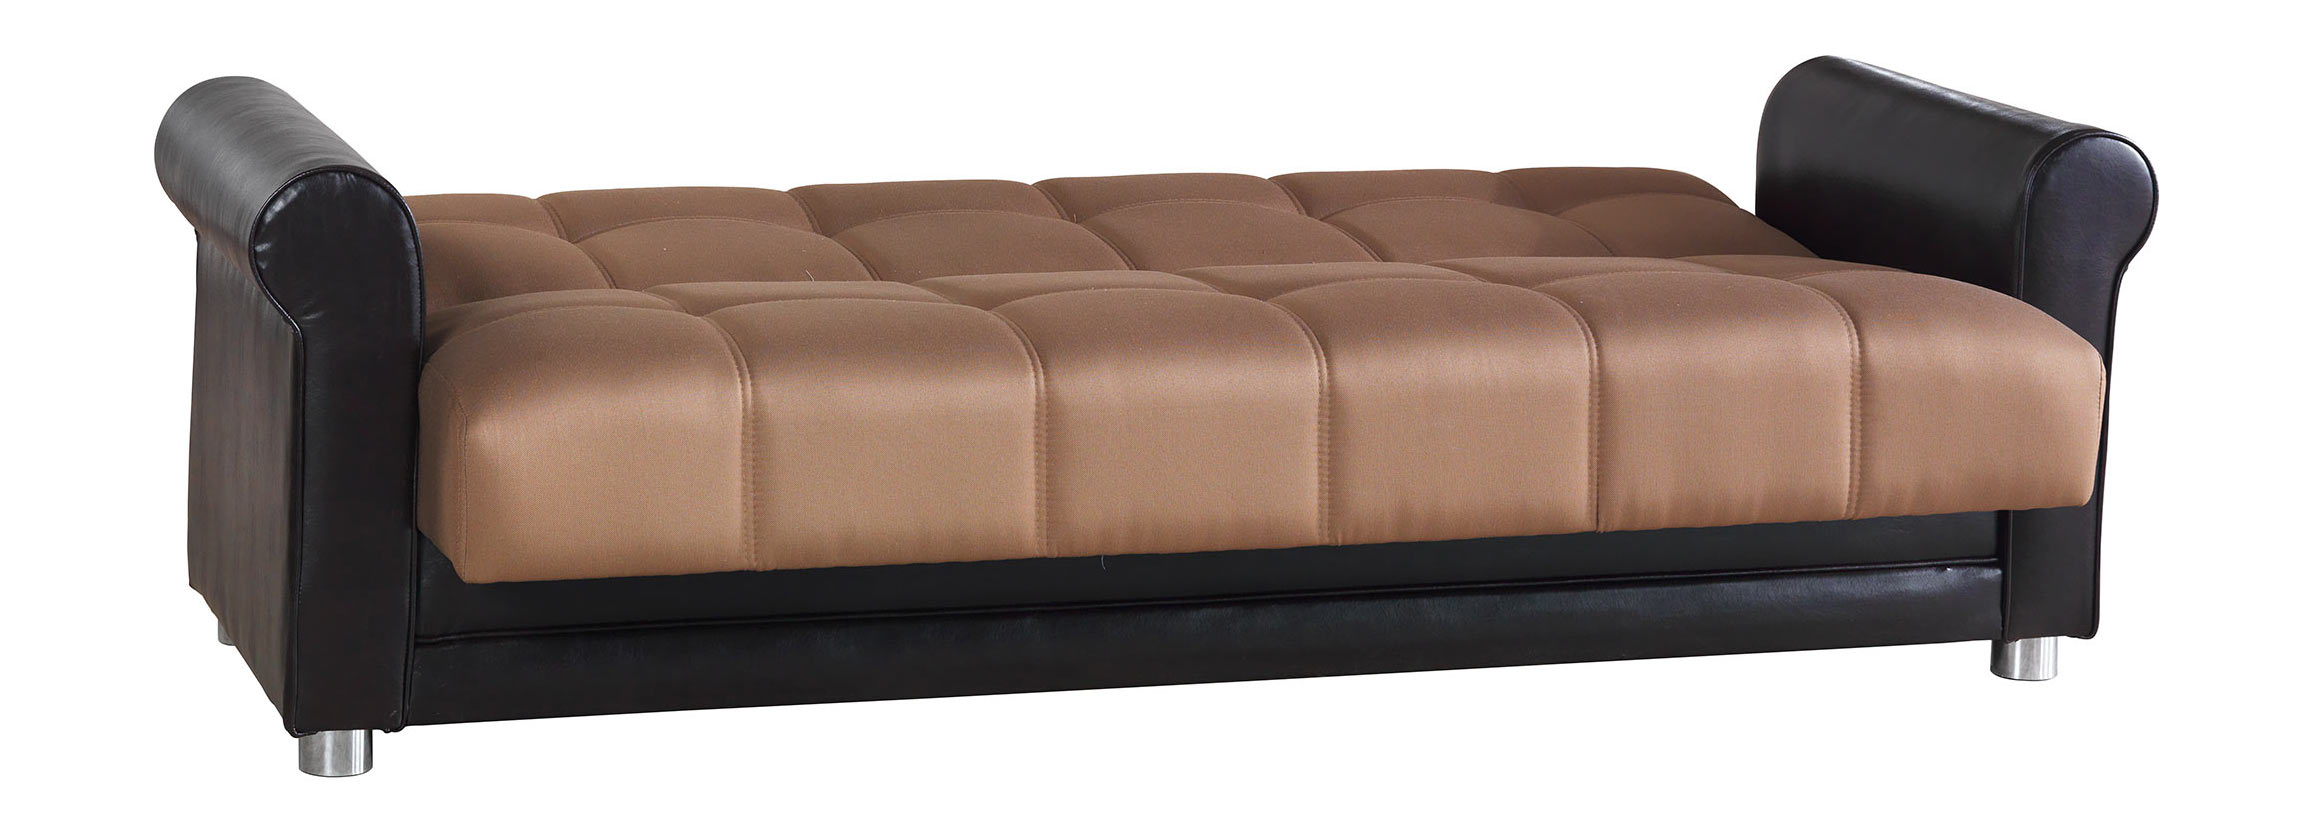 Avalon Prusa Brown Sofa by Casamode